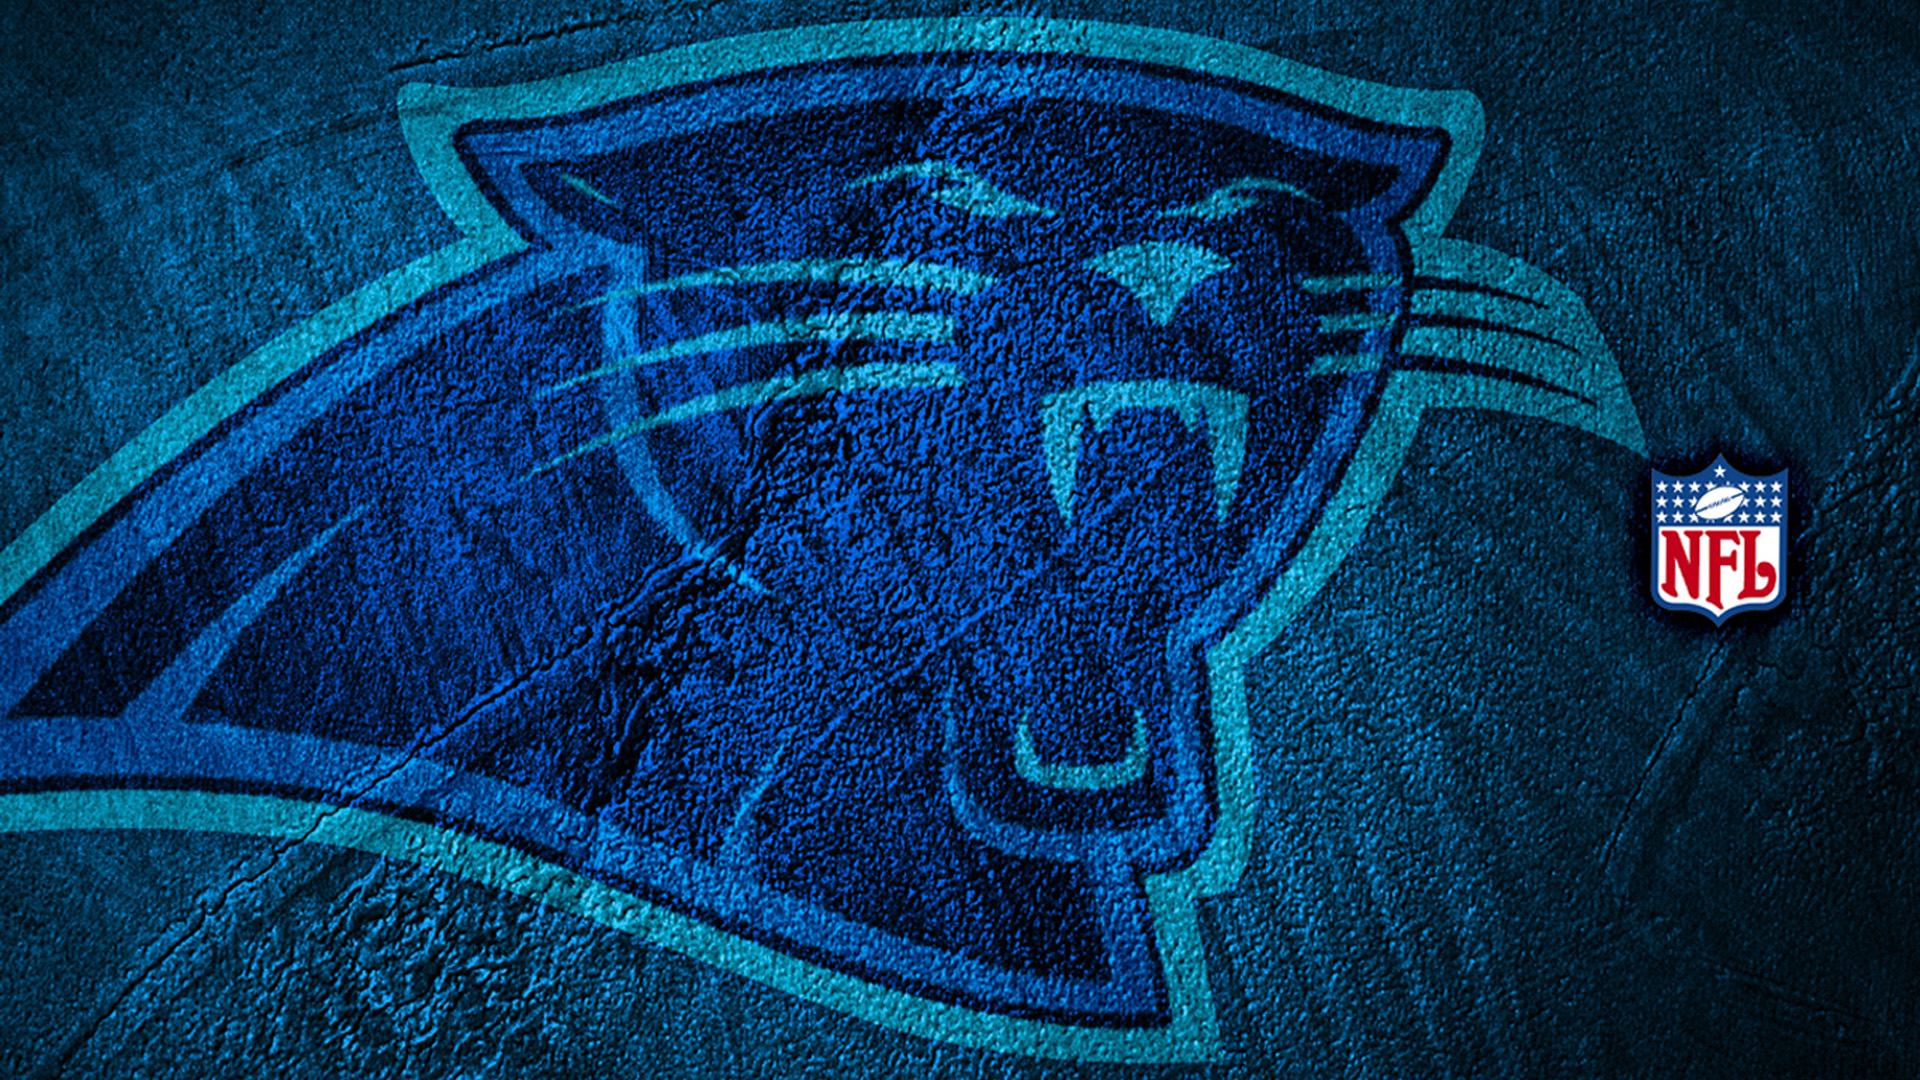 Download-free-carolina-panthers-for-your-mobile-phone-wallpaper-wp3804703